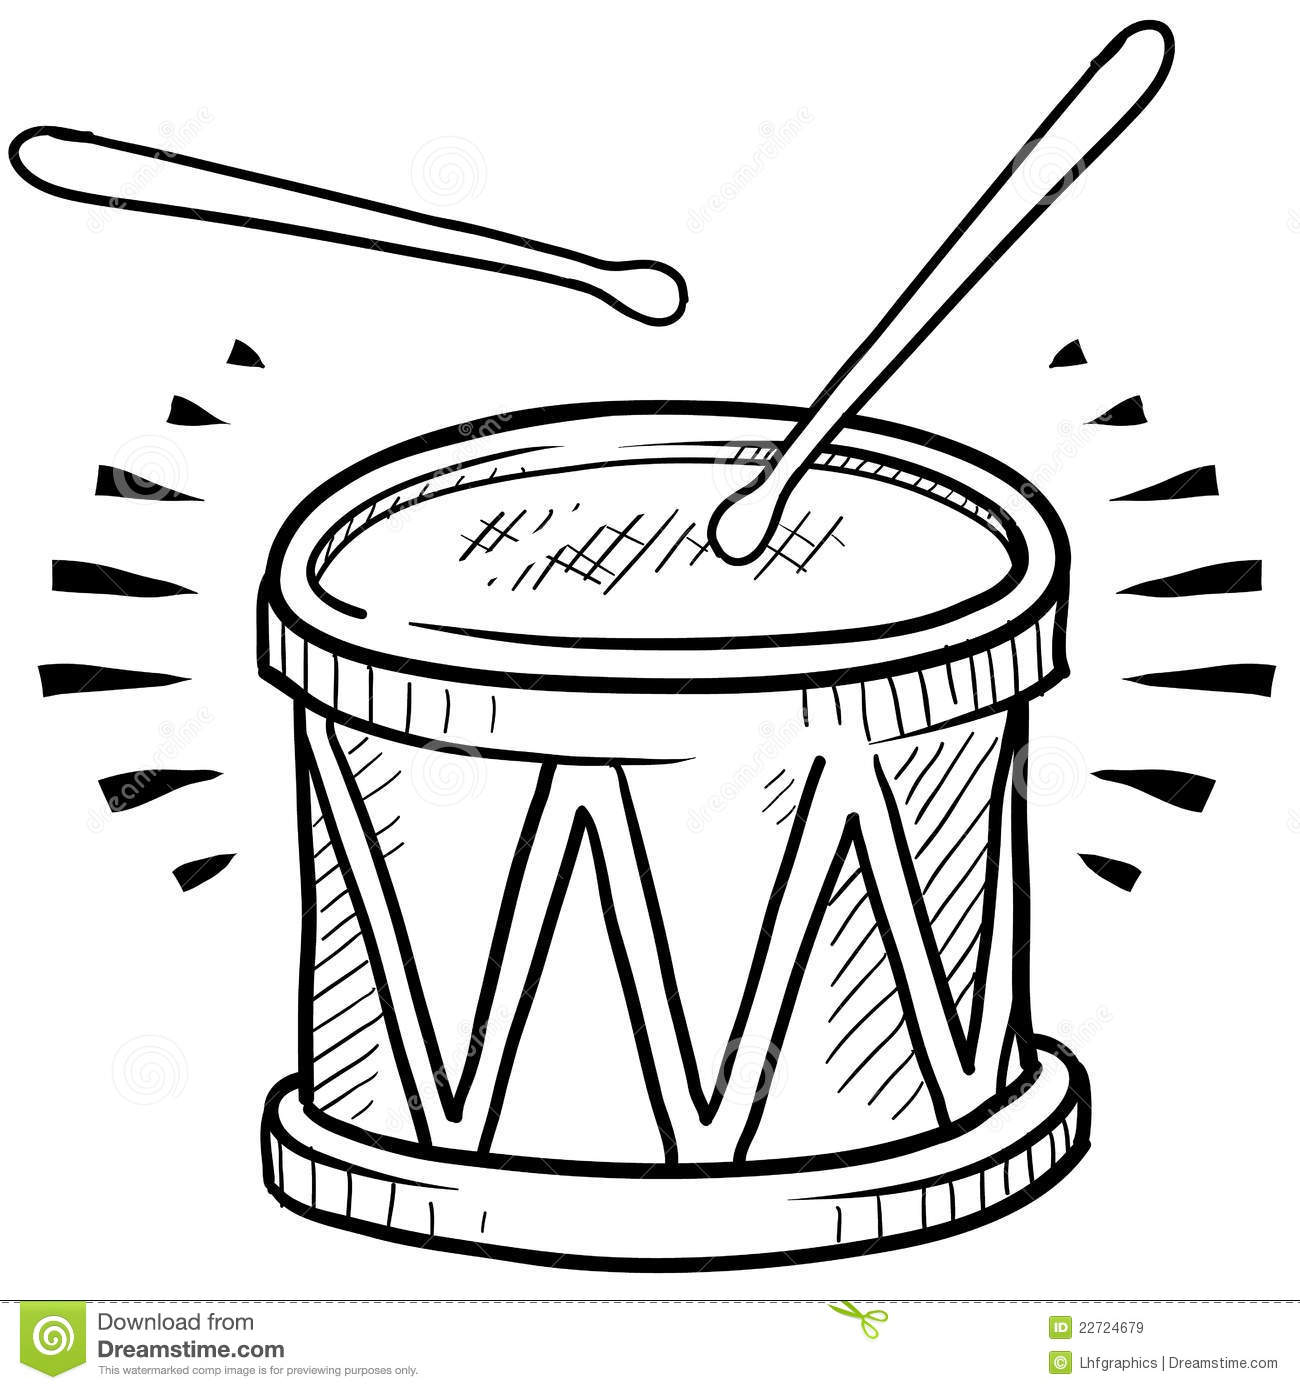 Drum sketch stock vector. Image of drum, snare, marching